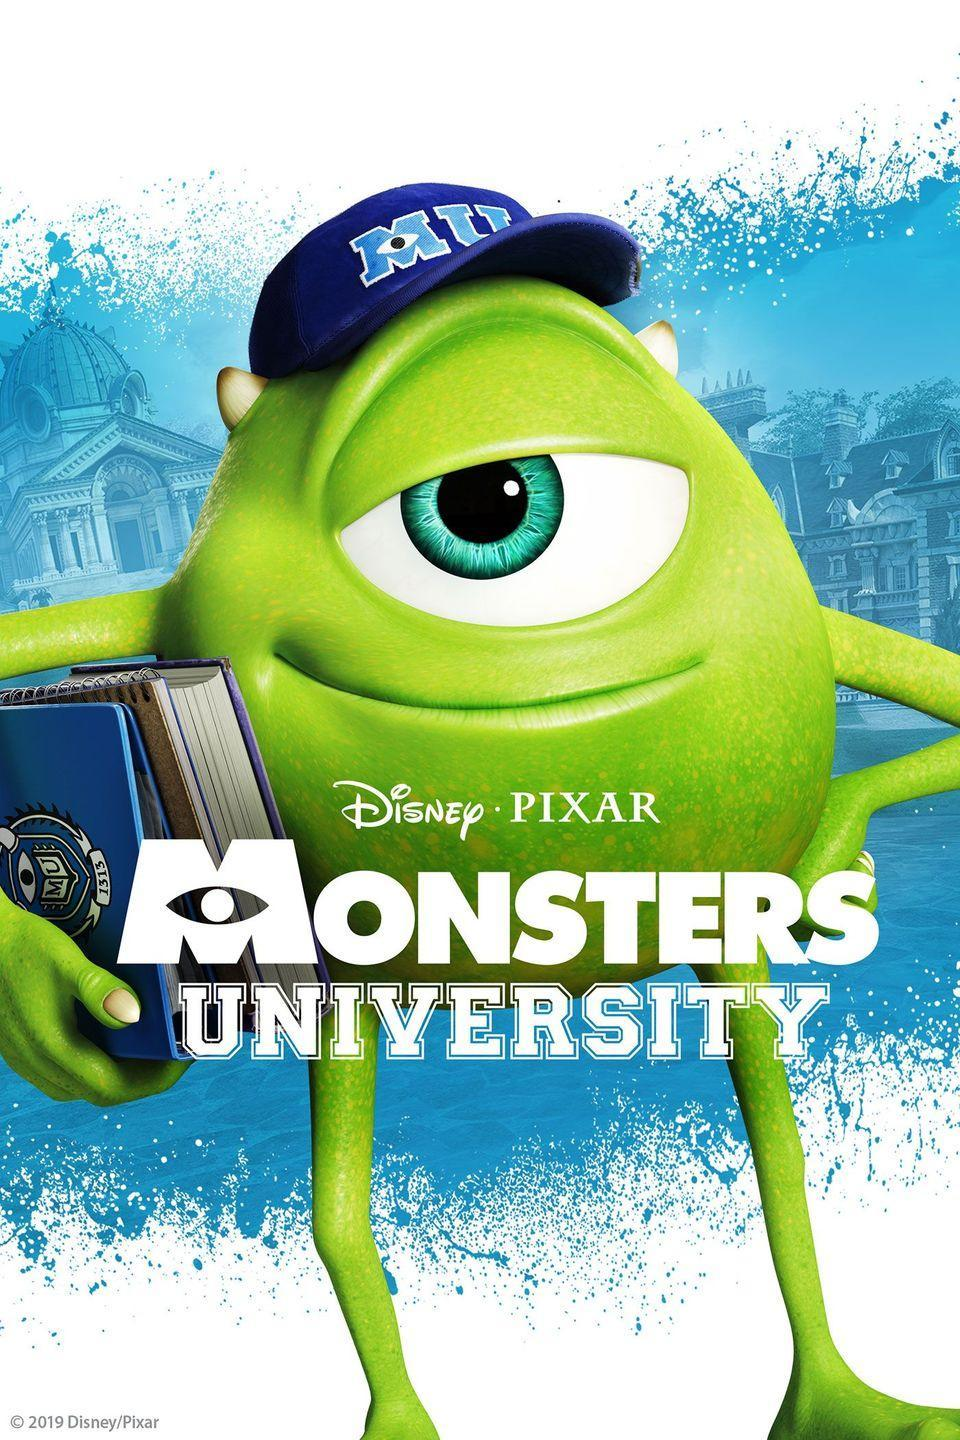 """<p>Mike Wazowski and James P. Sullivan """"Sulley"""" are back at it again, but we get to learn the how Mike and Sulley met at Monsters University. Mike have dreams of becoming a Scarer, but during his first semester at MU, his plans are derailed when he crosses paths with a natural-born hotshot, """"Sulley"""" and have to compete against each other in the elite Scare program. <br></p><p><a class=""""link rapid-noclick-resp"""" href=""""https://go.redirectingat.com?id=74968X1596630&url=https%3A%2F%2Fwww.disneyplus.com%2Fmovies%2Fmonsters-university%2F1jXFGfFl7WcX&sref=https%3A%2F%2Fwww.goodhousekeeping.com%2Flife%2Fentertainment%2Fg33651563%2Fdisney-halloween-movies%2F"""" rel=""""nofollow noopener"""" target=""""_blank"""" data-ylk=""""slk:WATCH NOW"""">WATCH NOW</a></p>"""